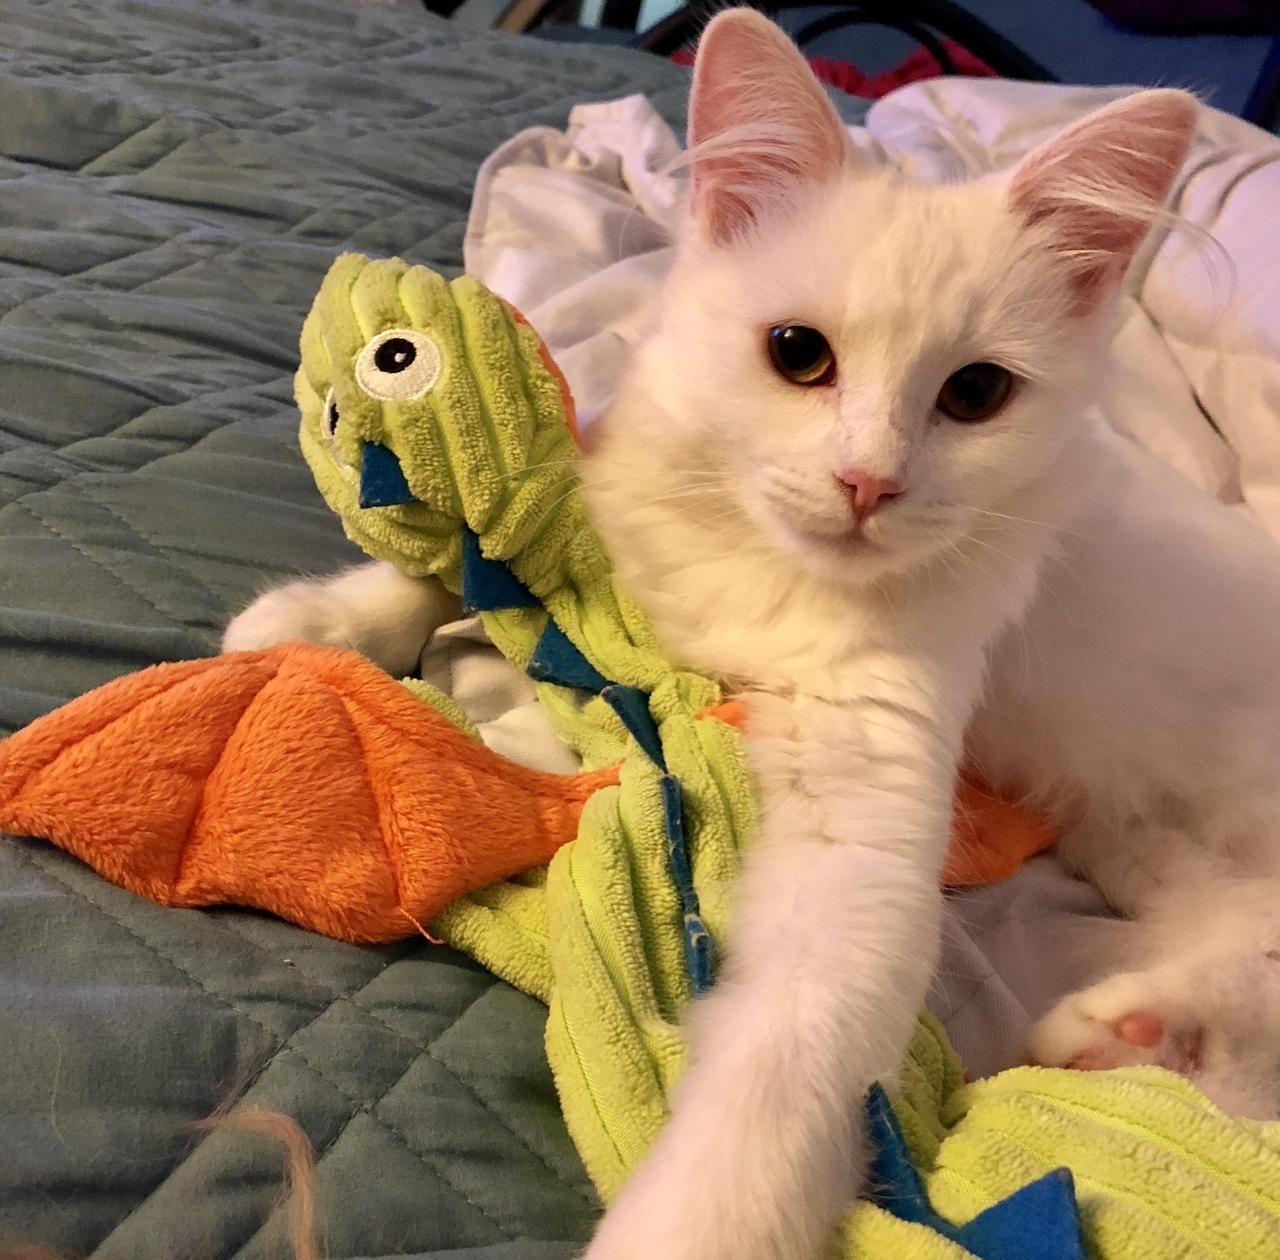 My Kitten Khaleesi Is Obsessed With Cuddling My Dogs Dragon Toy I Guess I Gave Her The Perfect Name By Sugar0182 What You Think About Dog Toys Kitty Kittens